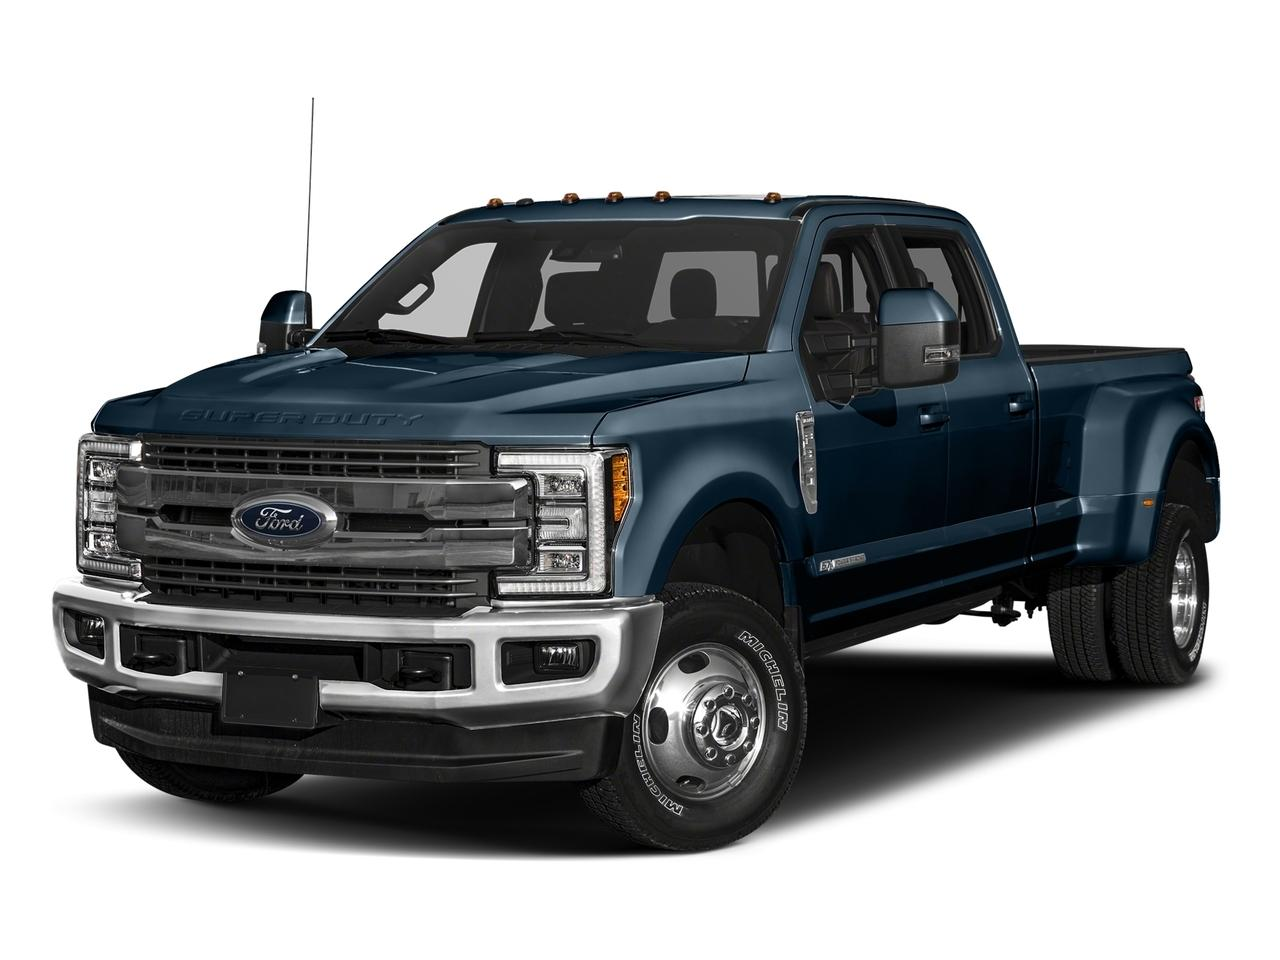 2017 Ford Super Duty F-350 DRW Vehicle Photo in Plainfield, IL 60586